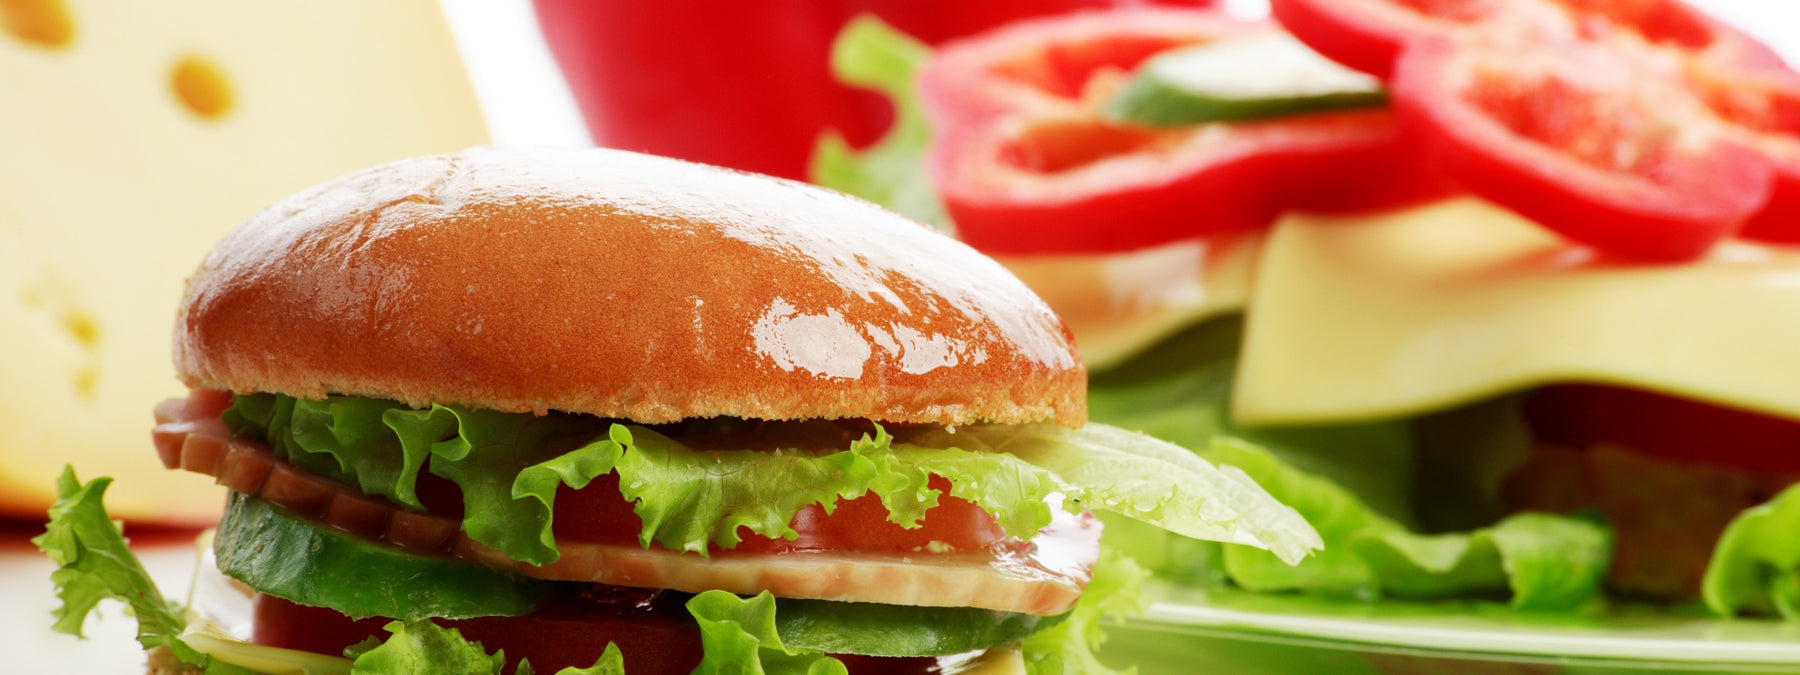 10 Best Fast Food Choices For Dieters